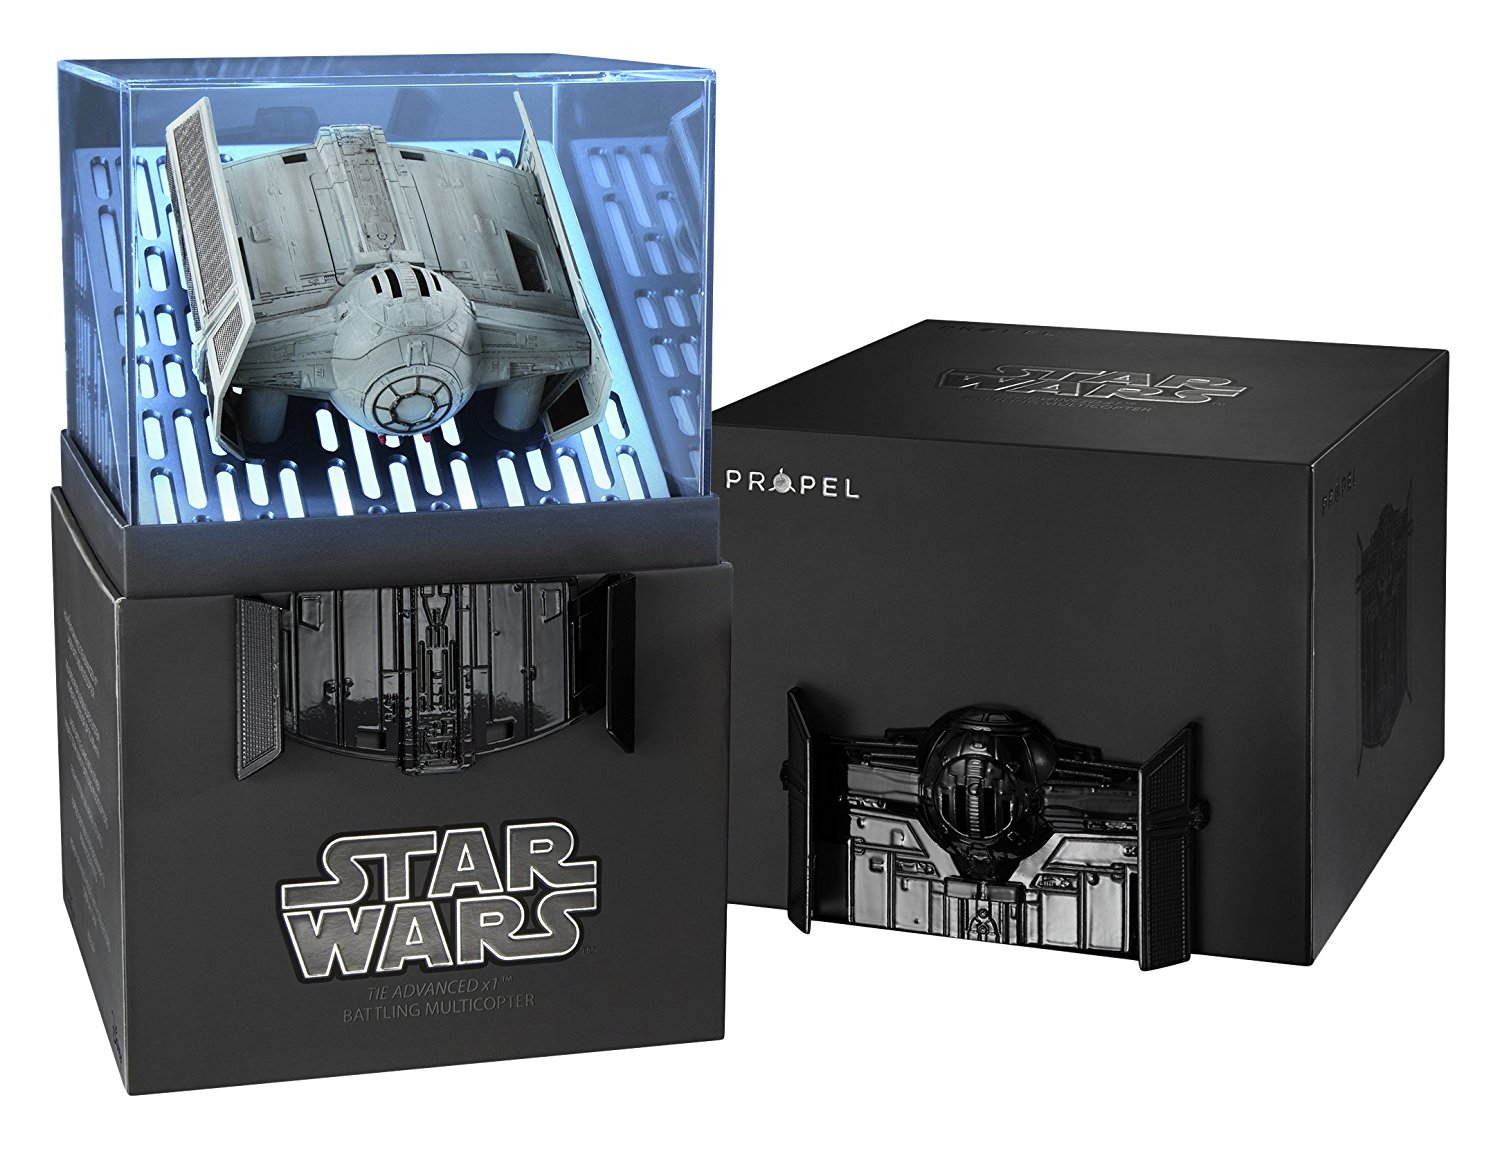 Star Wars - Tie-Advanced, quadcopter de la Batalla de Alto Rendimiento (Propel SW-0327-CX)